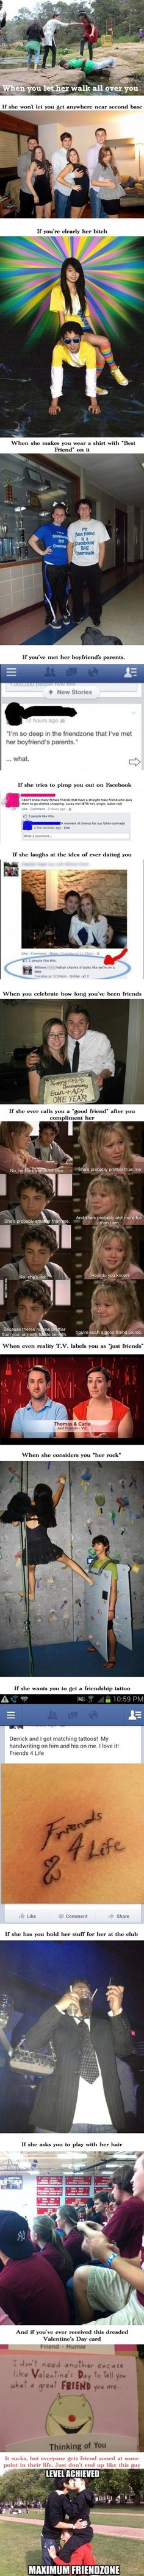 You know you are friendzoned when...